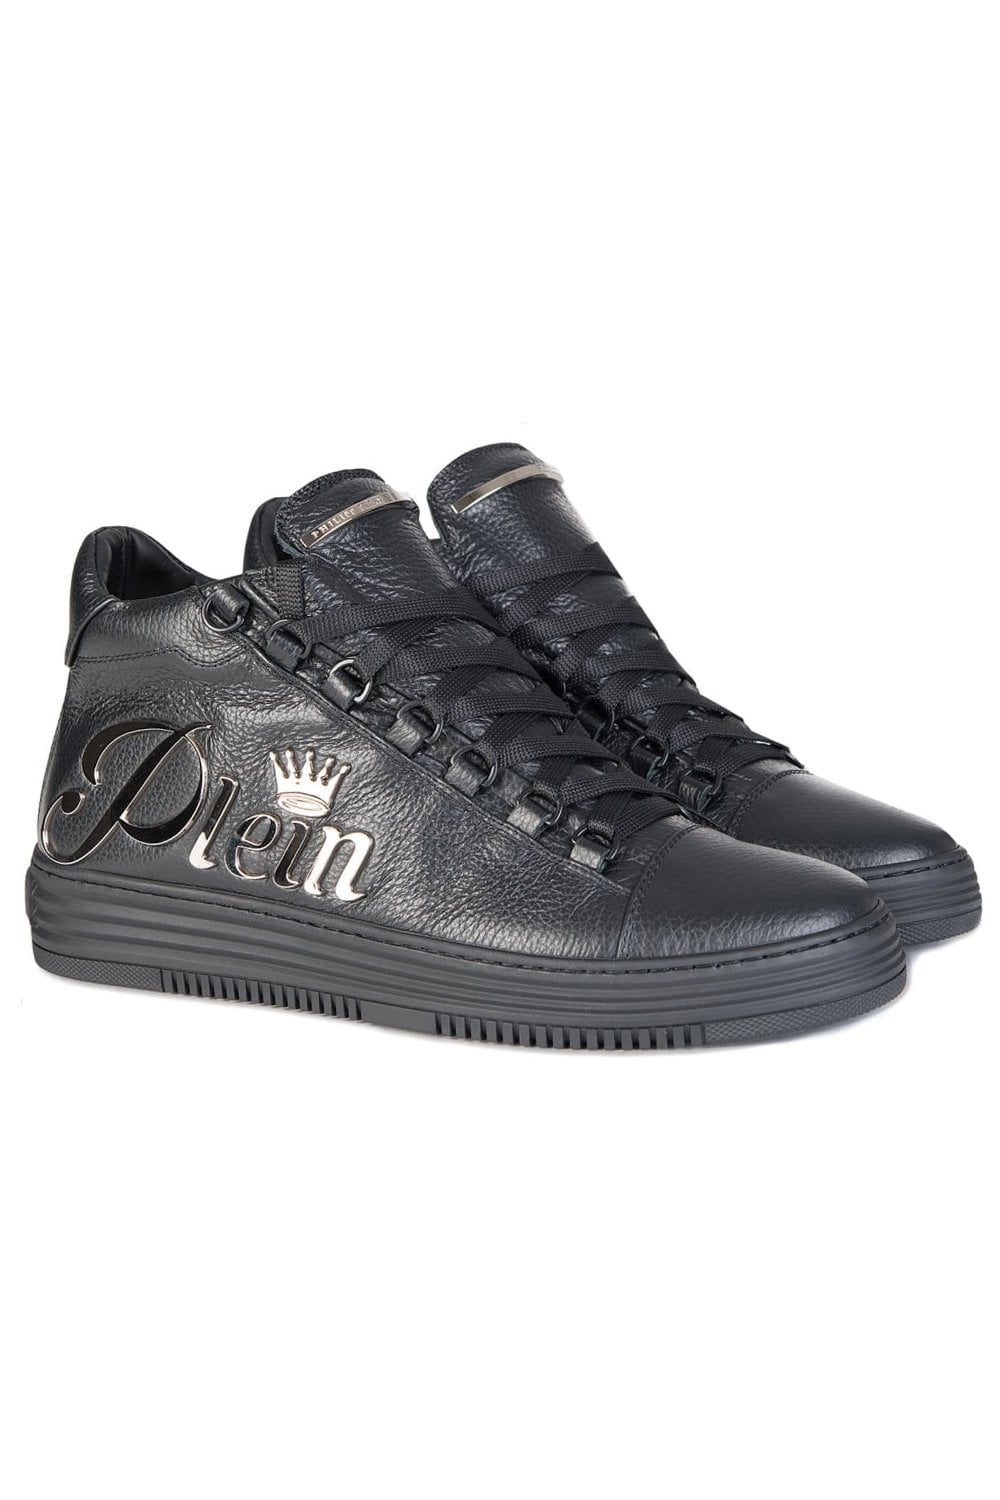 1428e88be92 Philipp Plein Kingdom Sneakers Black